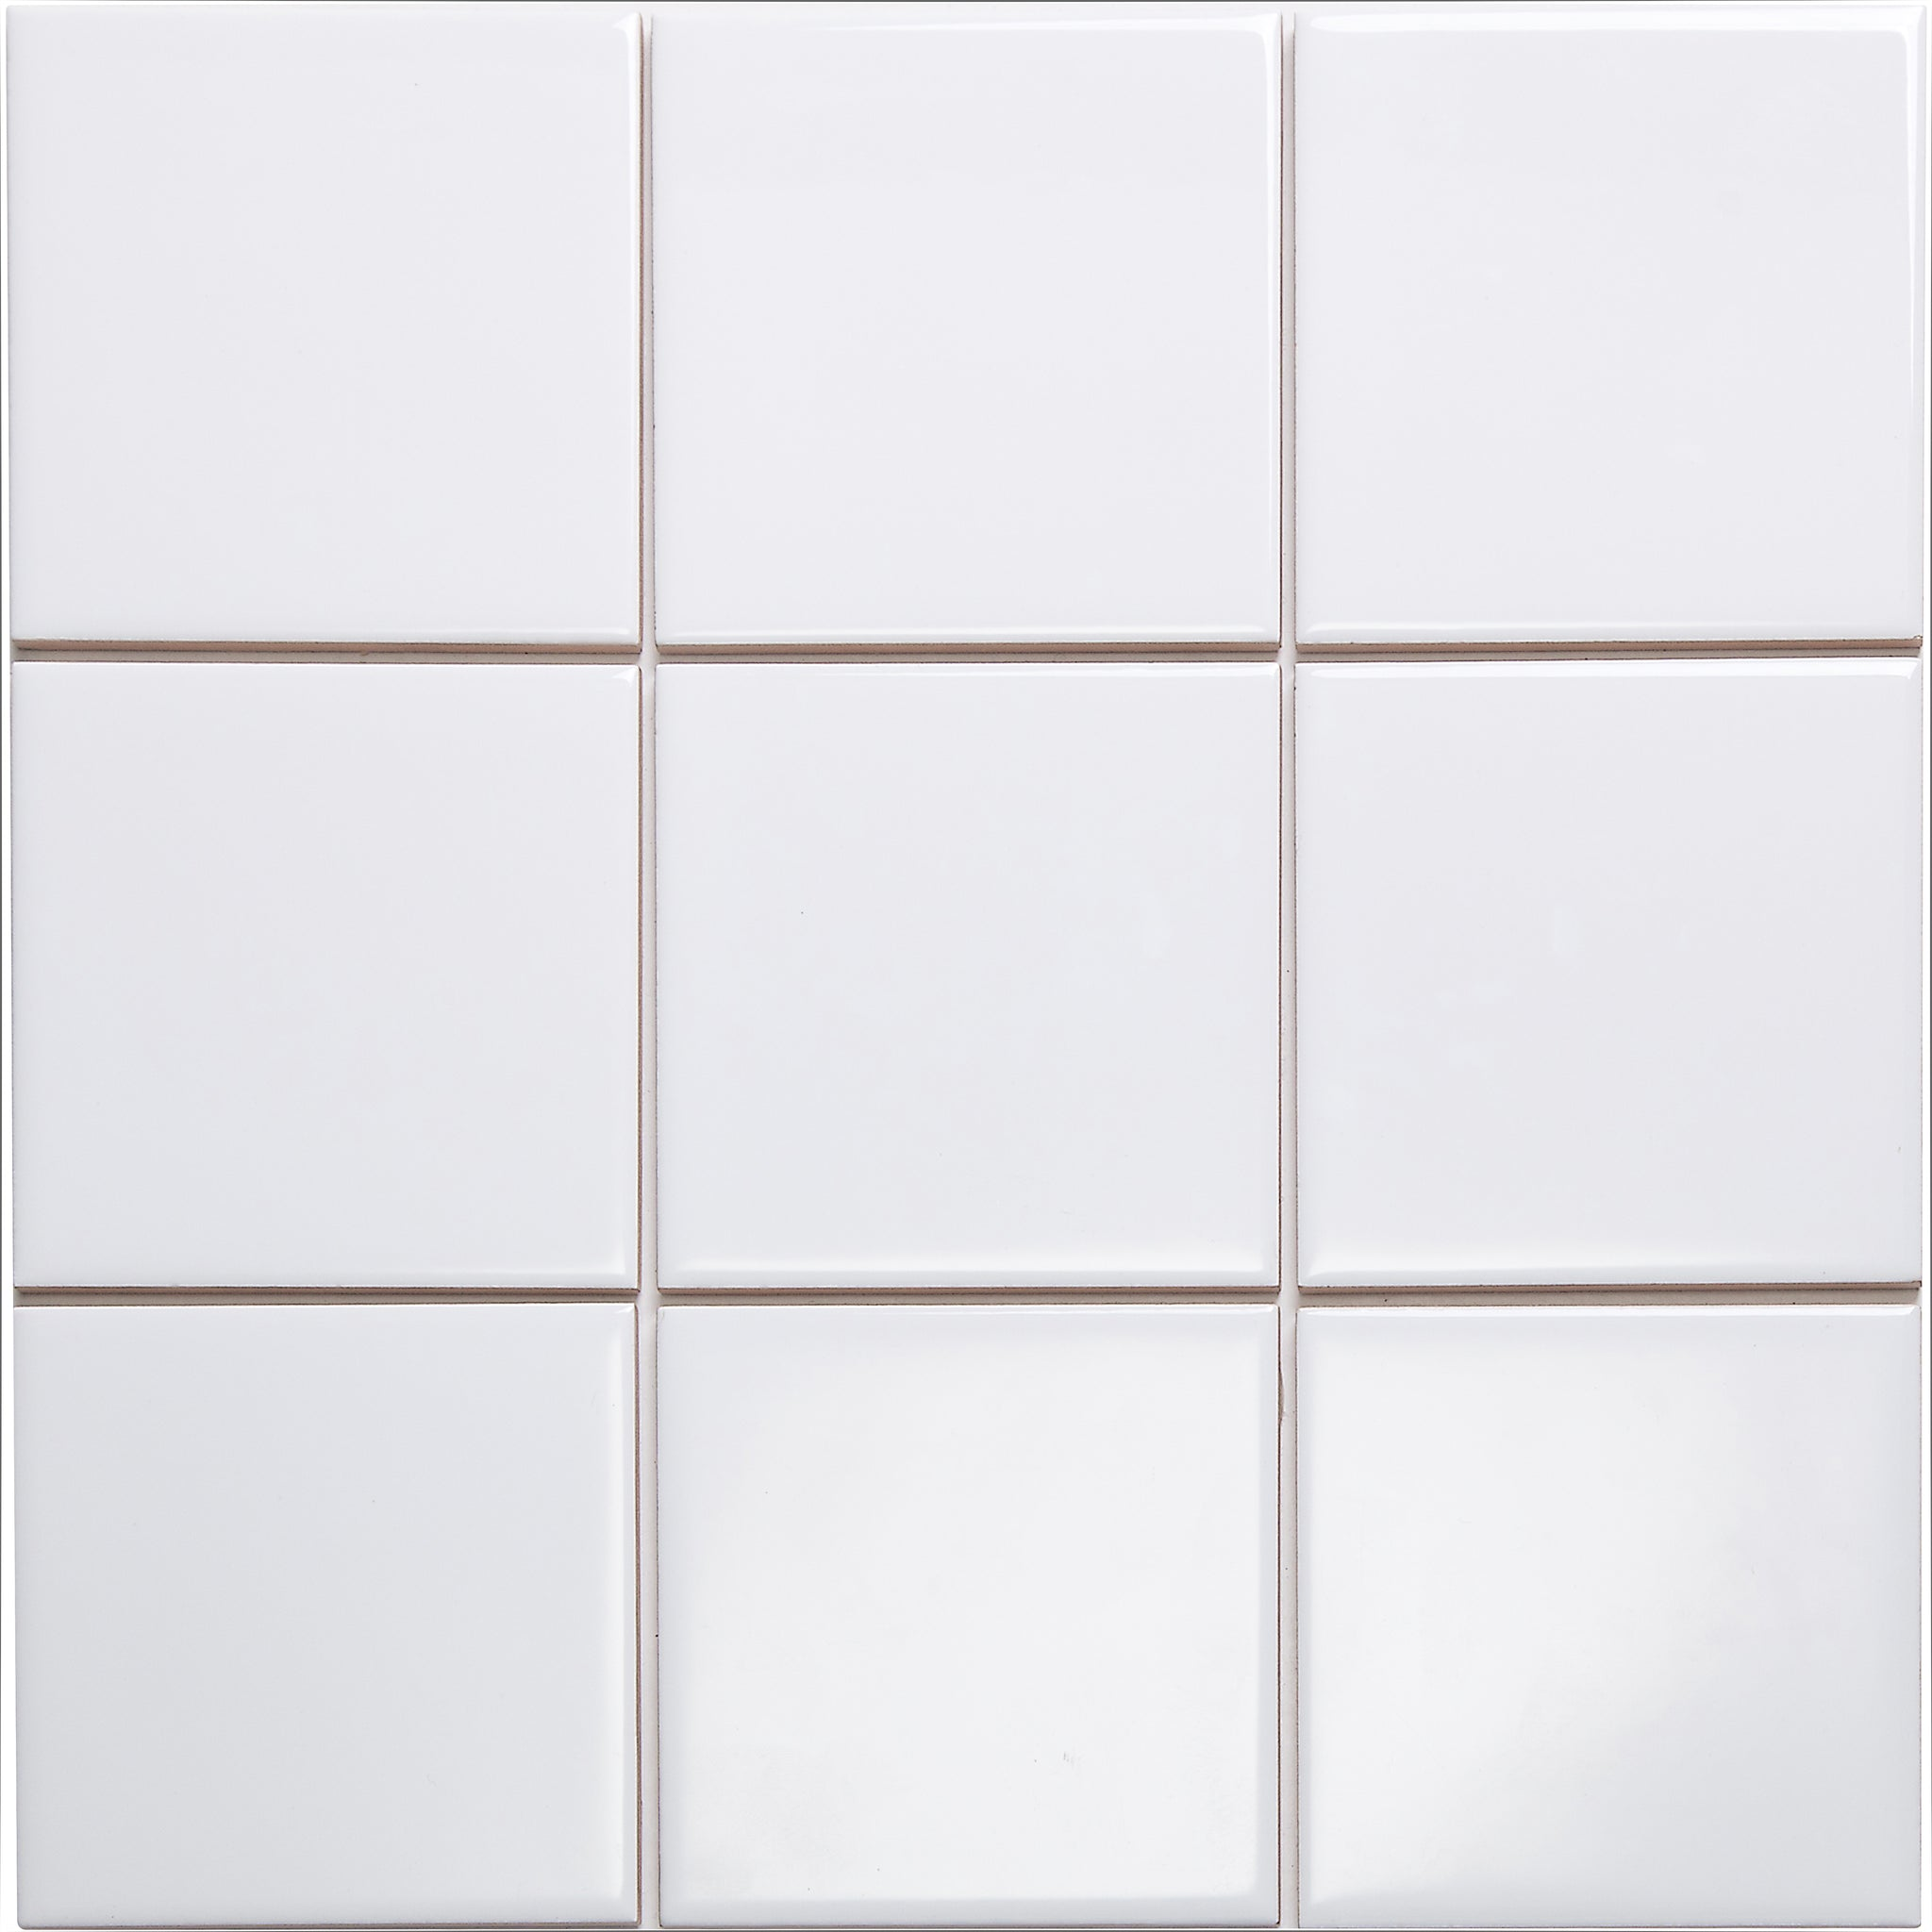 Bauhaus GT06115 100x100mm Glazed Gloss White Wall Tile